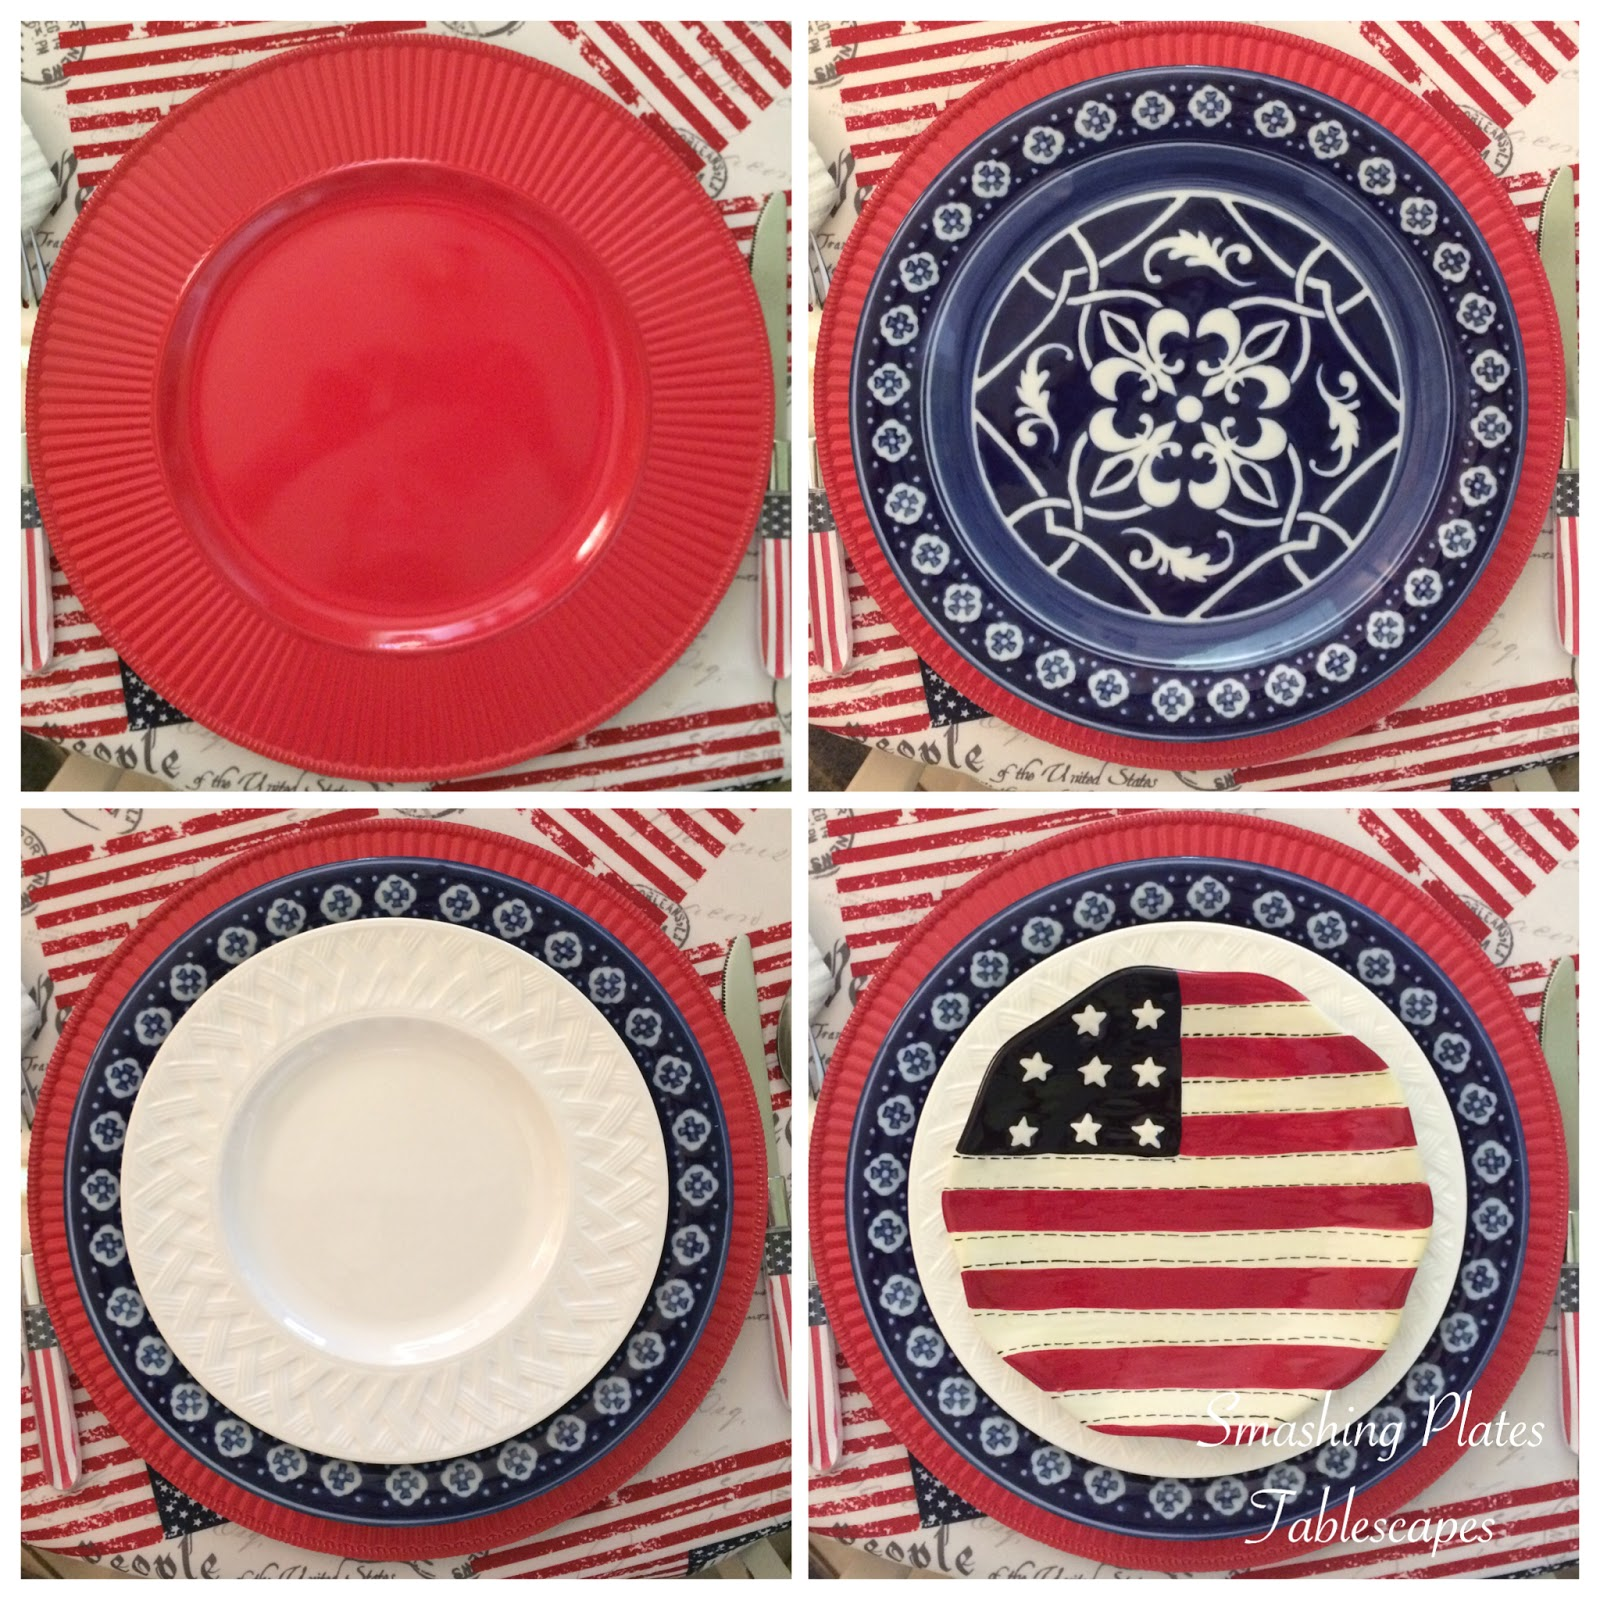 The Catalina Medallion dinner plates are available at Replacements Ltd. The white salad plates are a thrift store find. The flag plates ...  sc 1 st  Smashing Plates Tablescapes & Smashing Plates Tablescapes: Party Like Itu0027s 1776